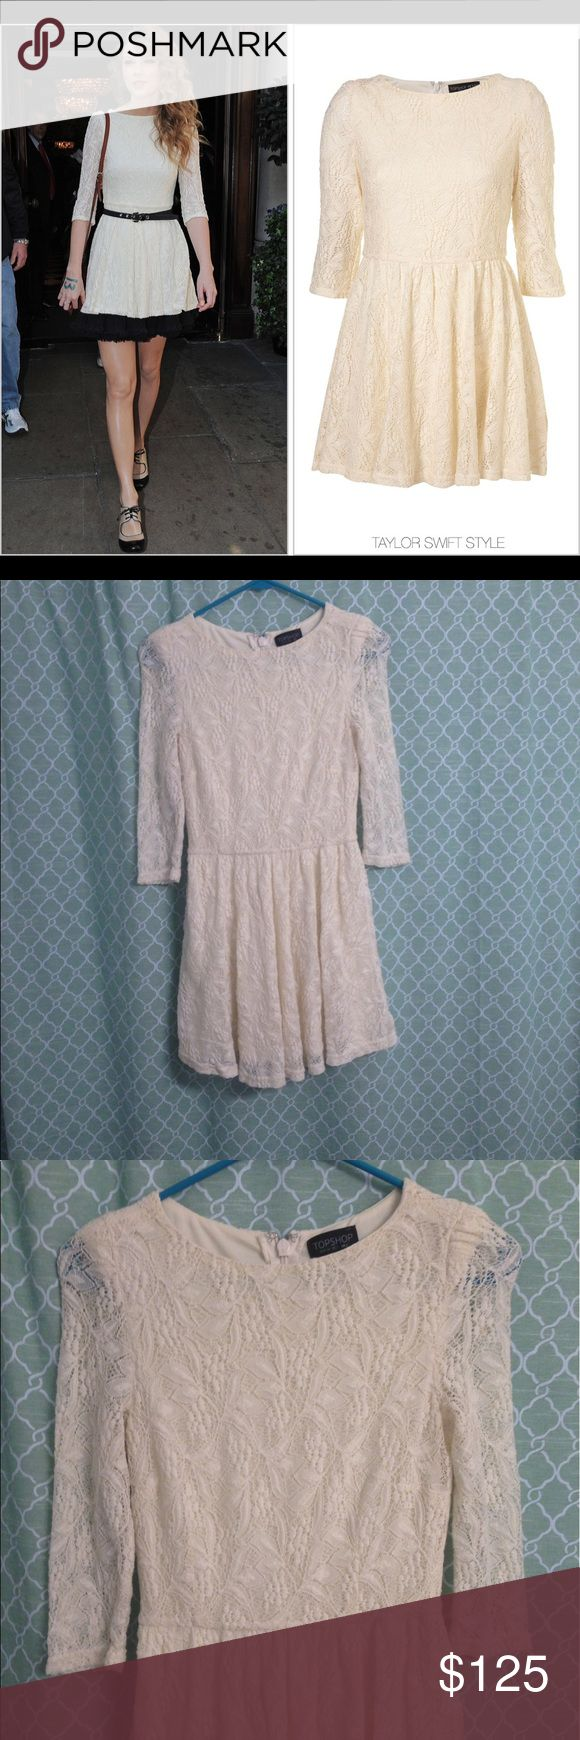 NWOT Topshop Flippy Lace Dress ASO Taylor Swift! 2 Up for sale is a beautiful NWOT Topshop Cream Lace Flippy Dress, Size 2. This is the same dress Tay wore in London. Extremely rare and hard to find. Size 2 (US). Topshop Dresses Mini